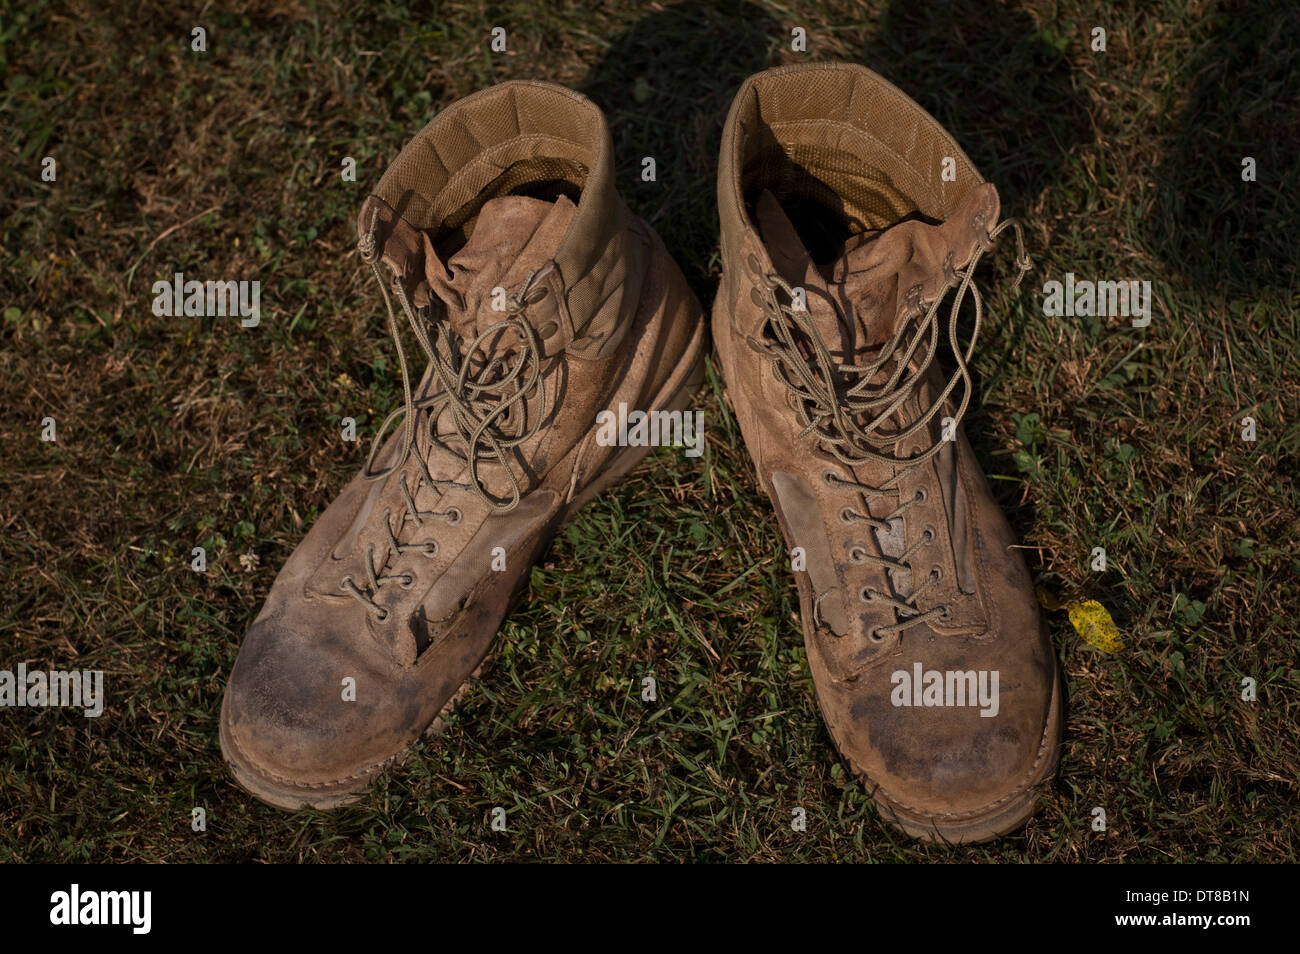 August 3, 2011 - A pair of combat boots belonging to a U.S. Marine Corps Sergeant who received the medal of honor. - Stock Image